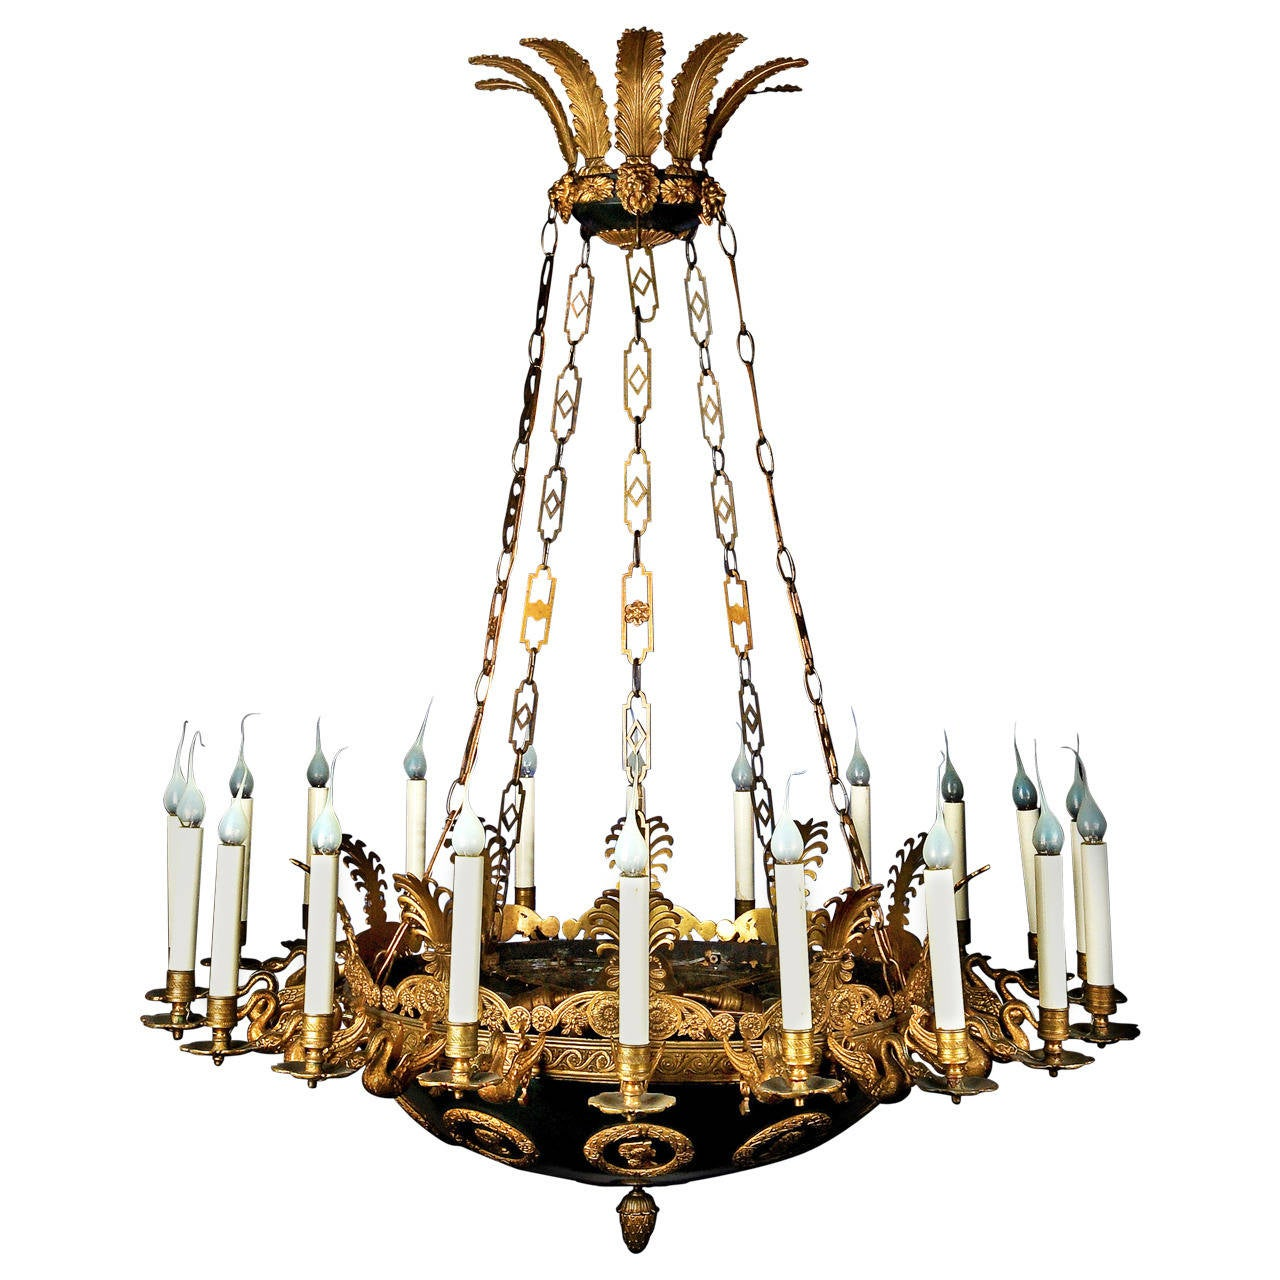 Impressive and Large Antique French Empire Gilt and Patina Bronze Chandelier  1 - Impressive And Large Antique French Empire Gilt And Patina Bronze